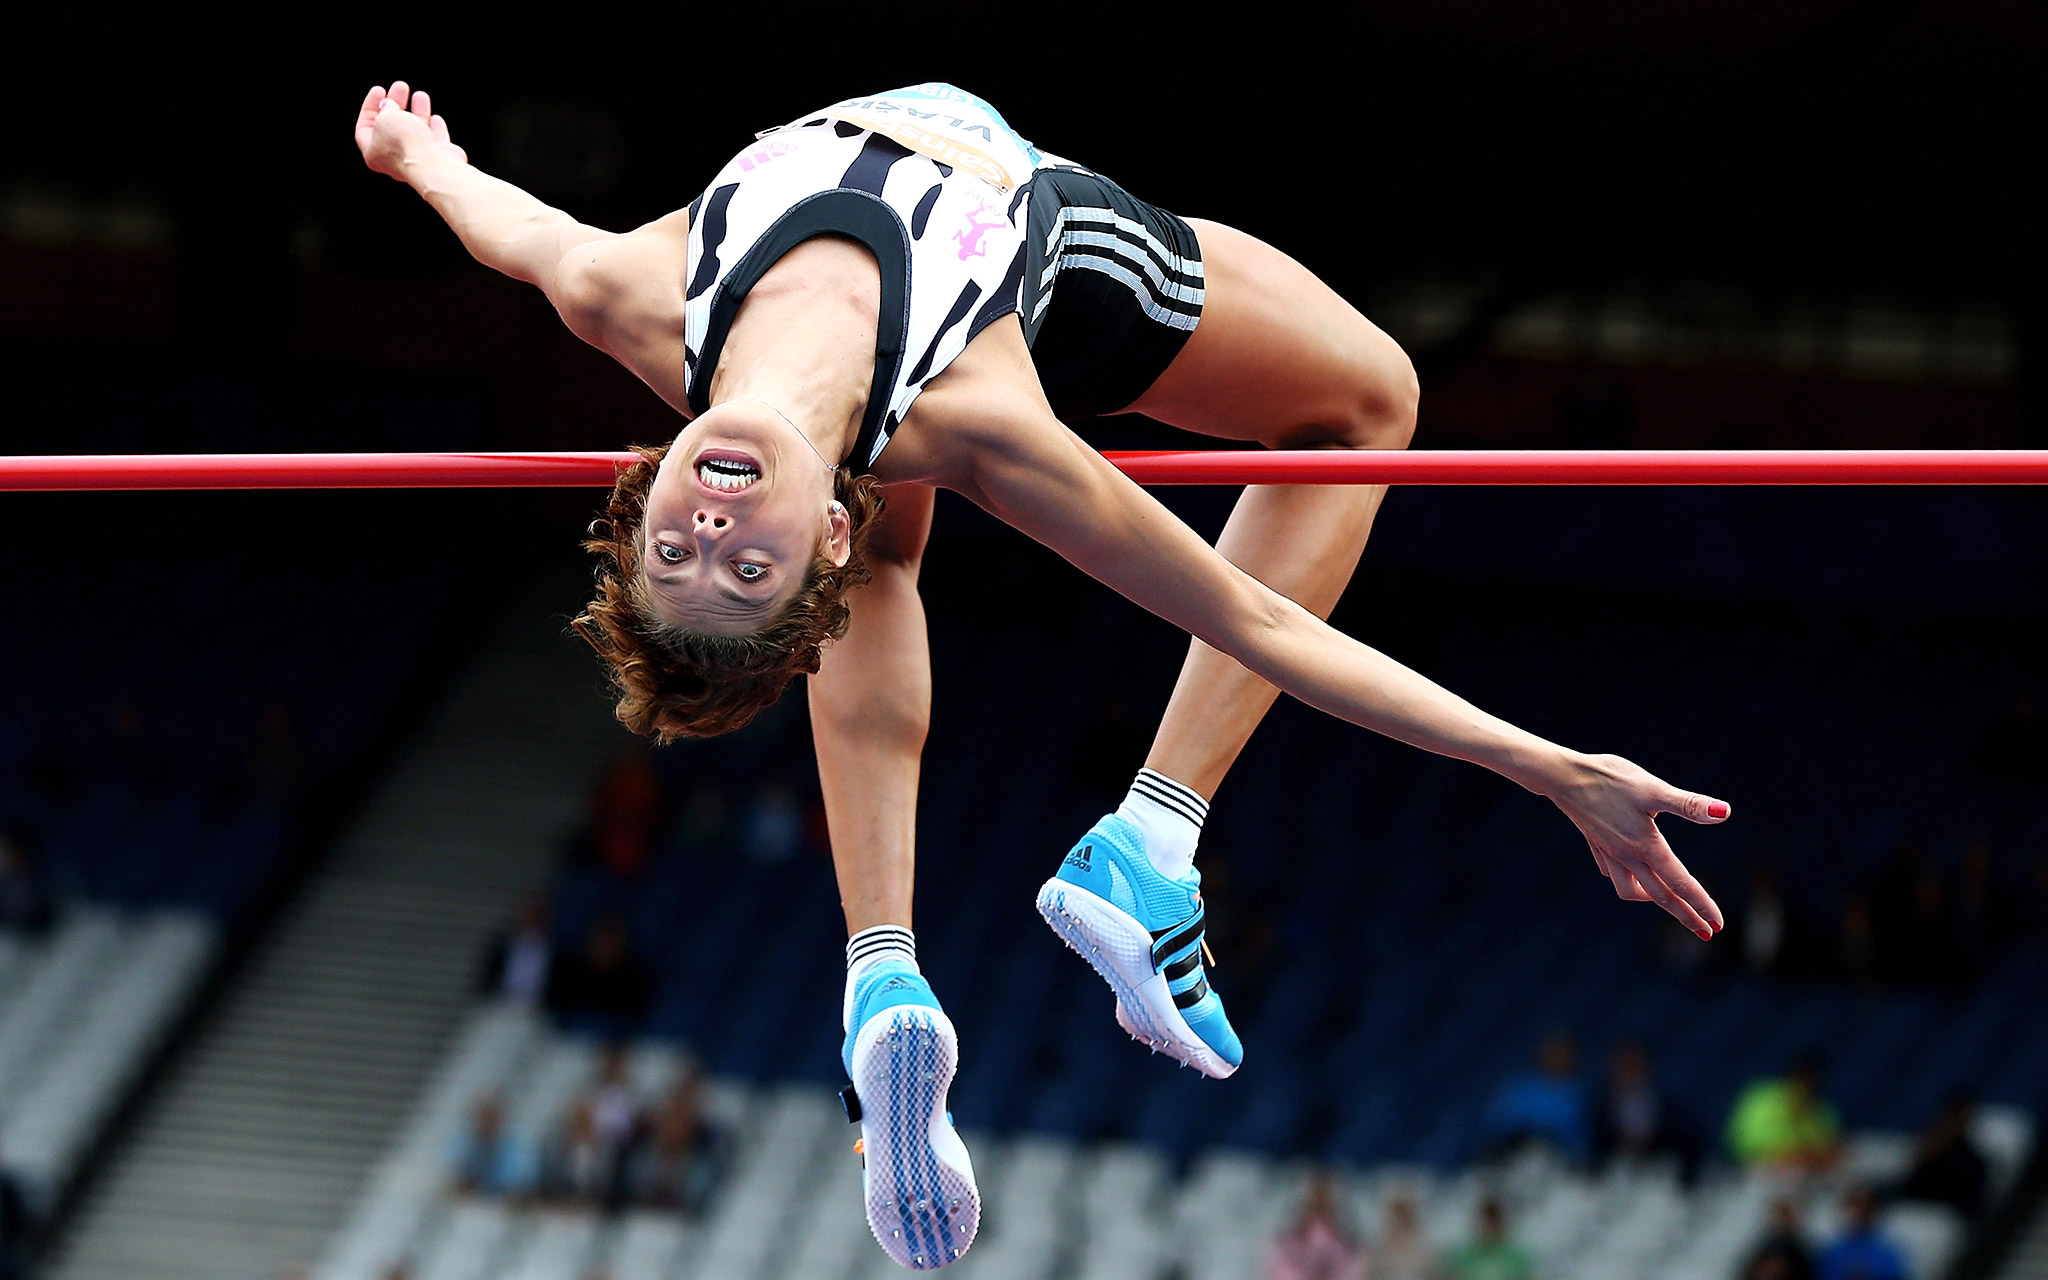 Croatia's Blanka Vlasic in action in the women's high jump event during Day 2 of the Diamond League Sainsbury's Glasgow Grand Prix at Hampden Park in Scotland.